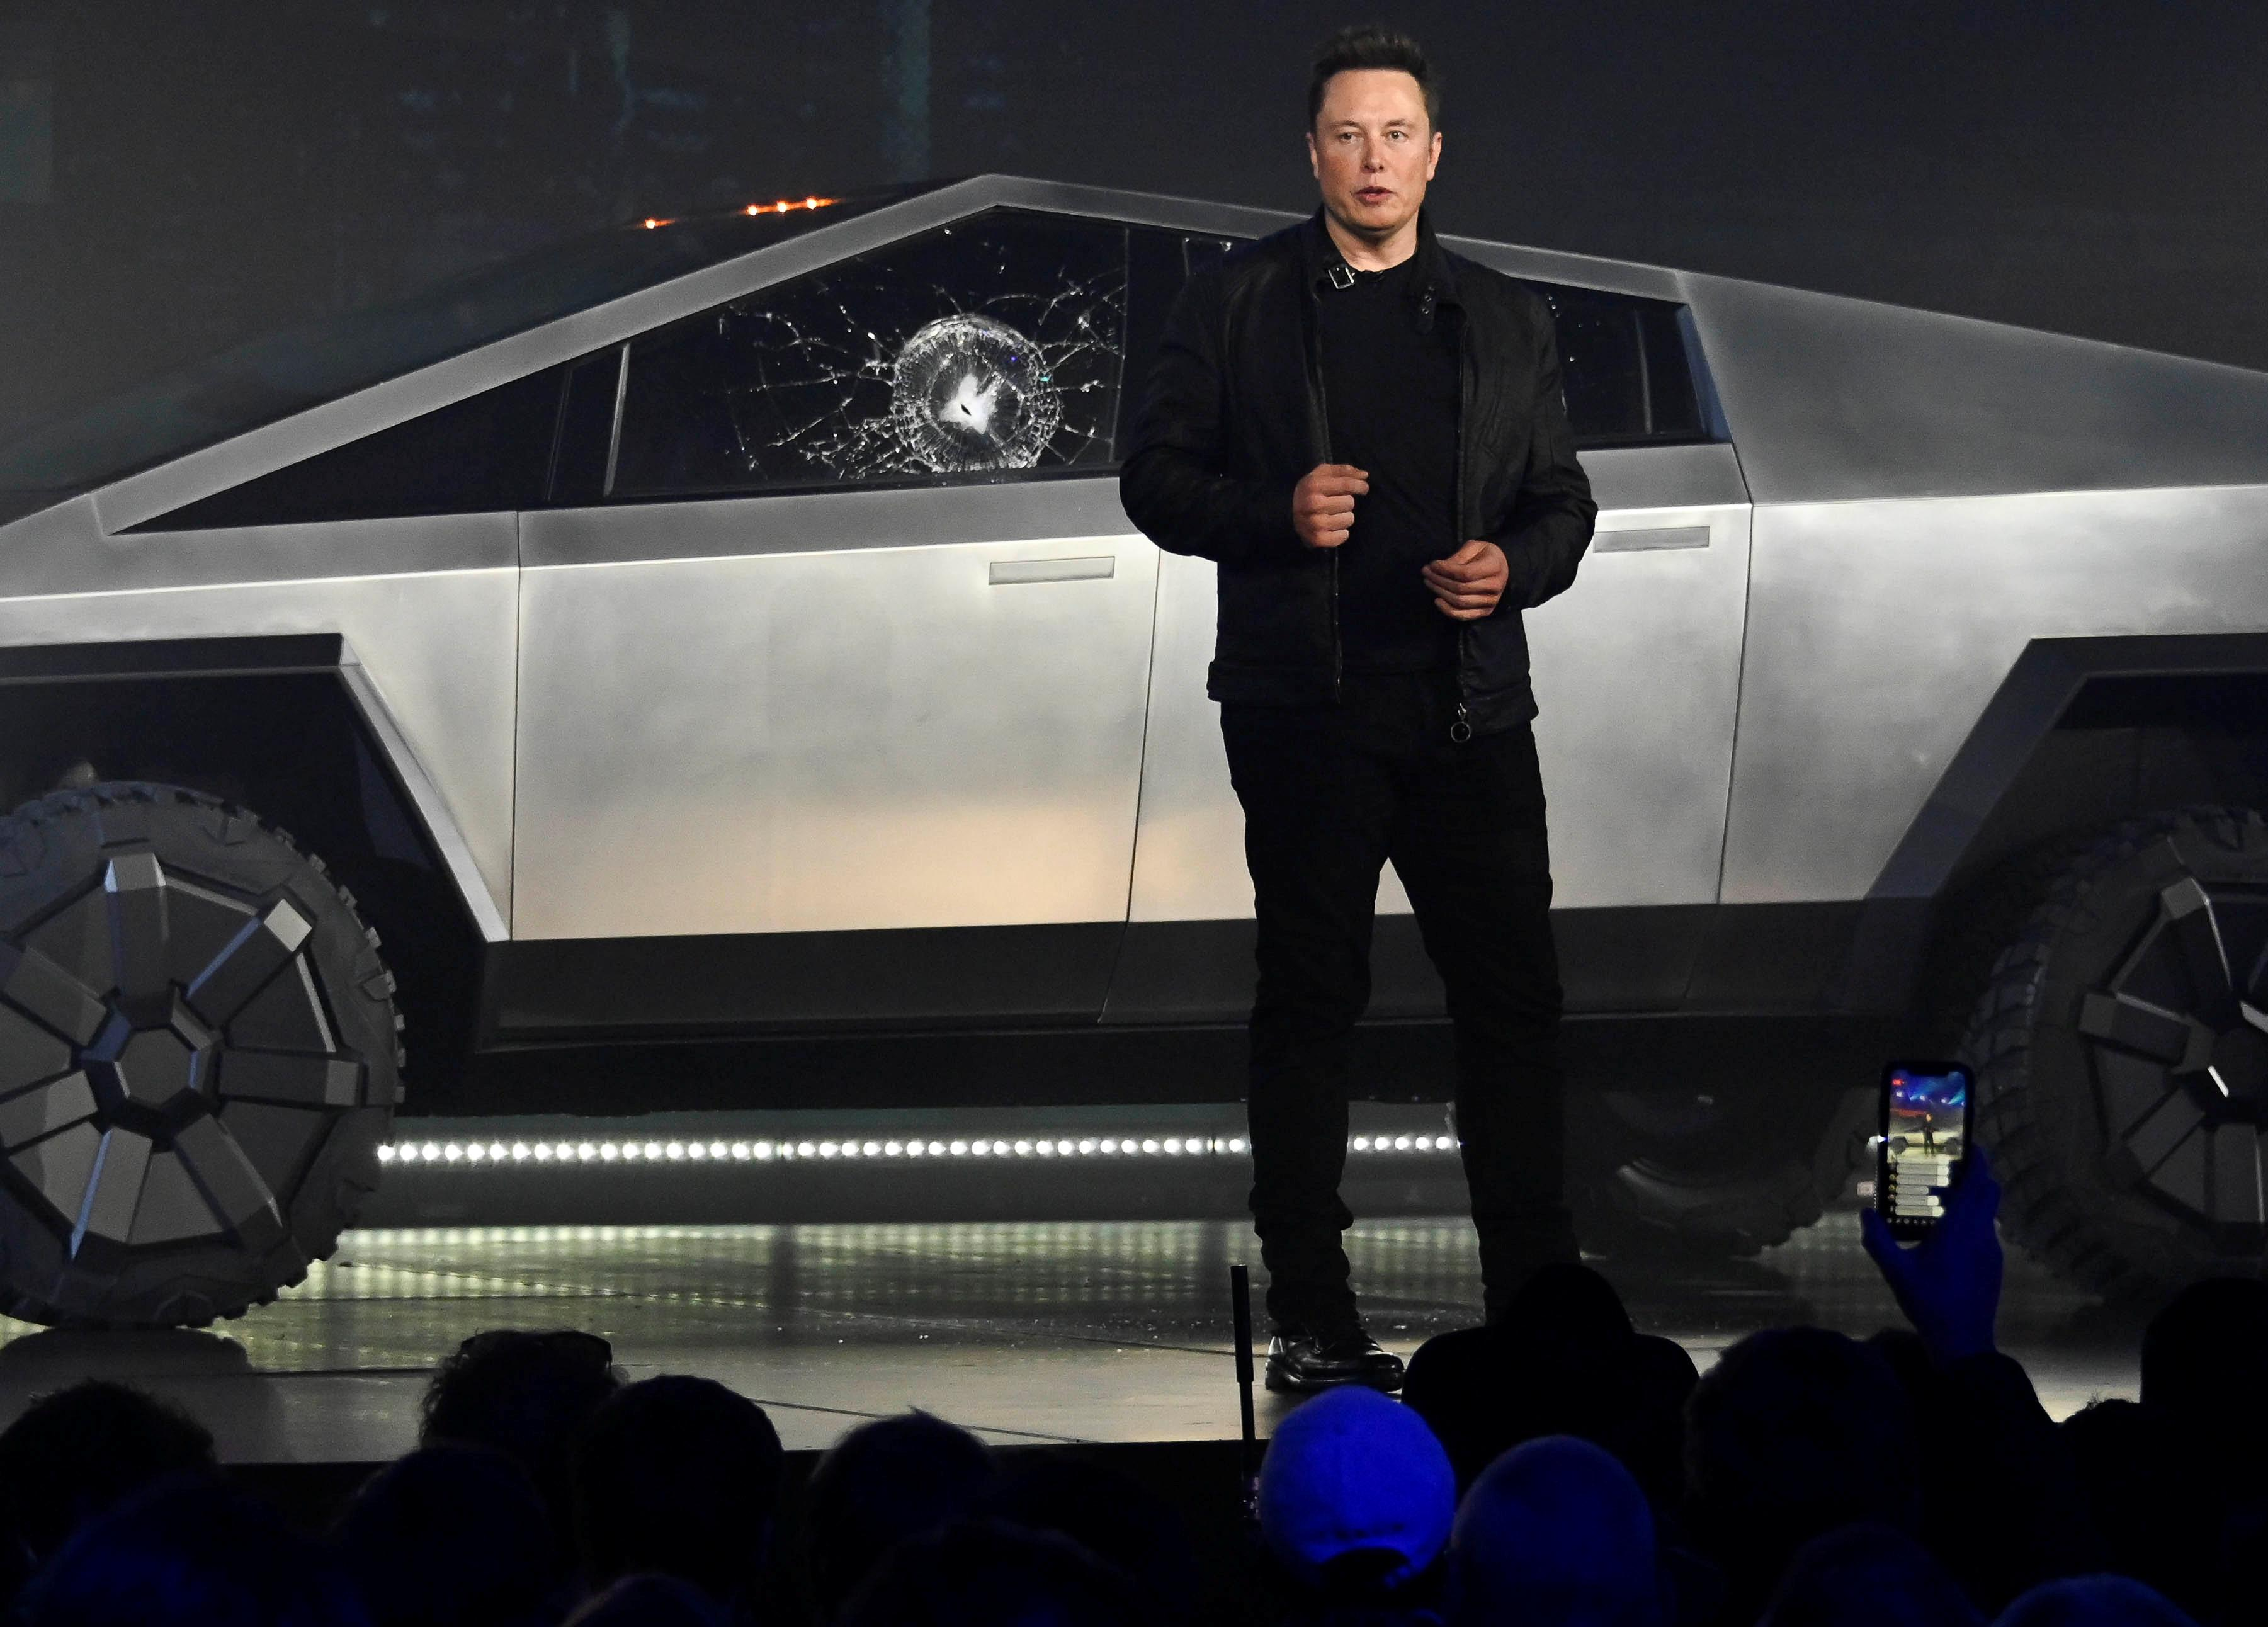 Shattered glass: Futuristic design questioned after Tesla...